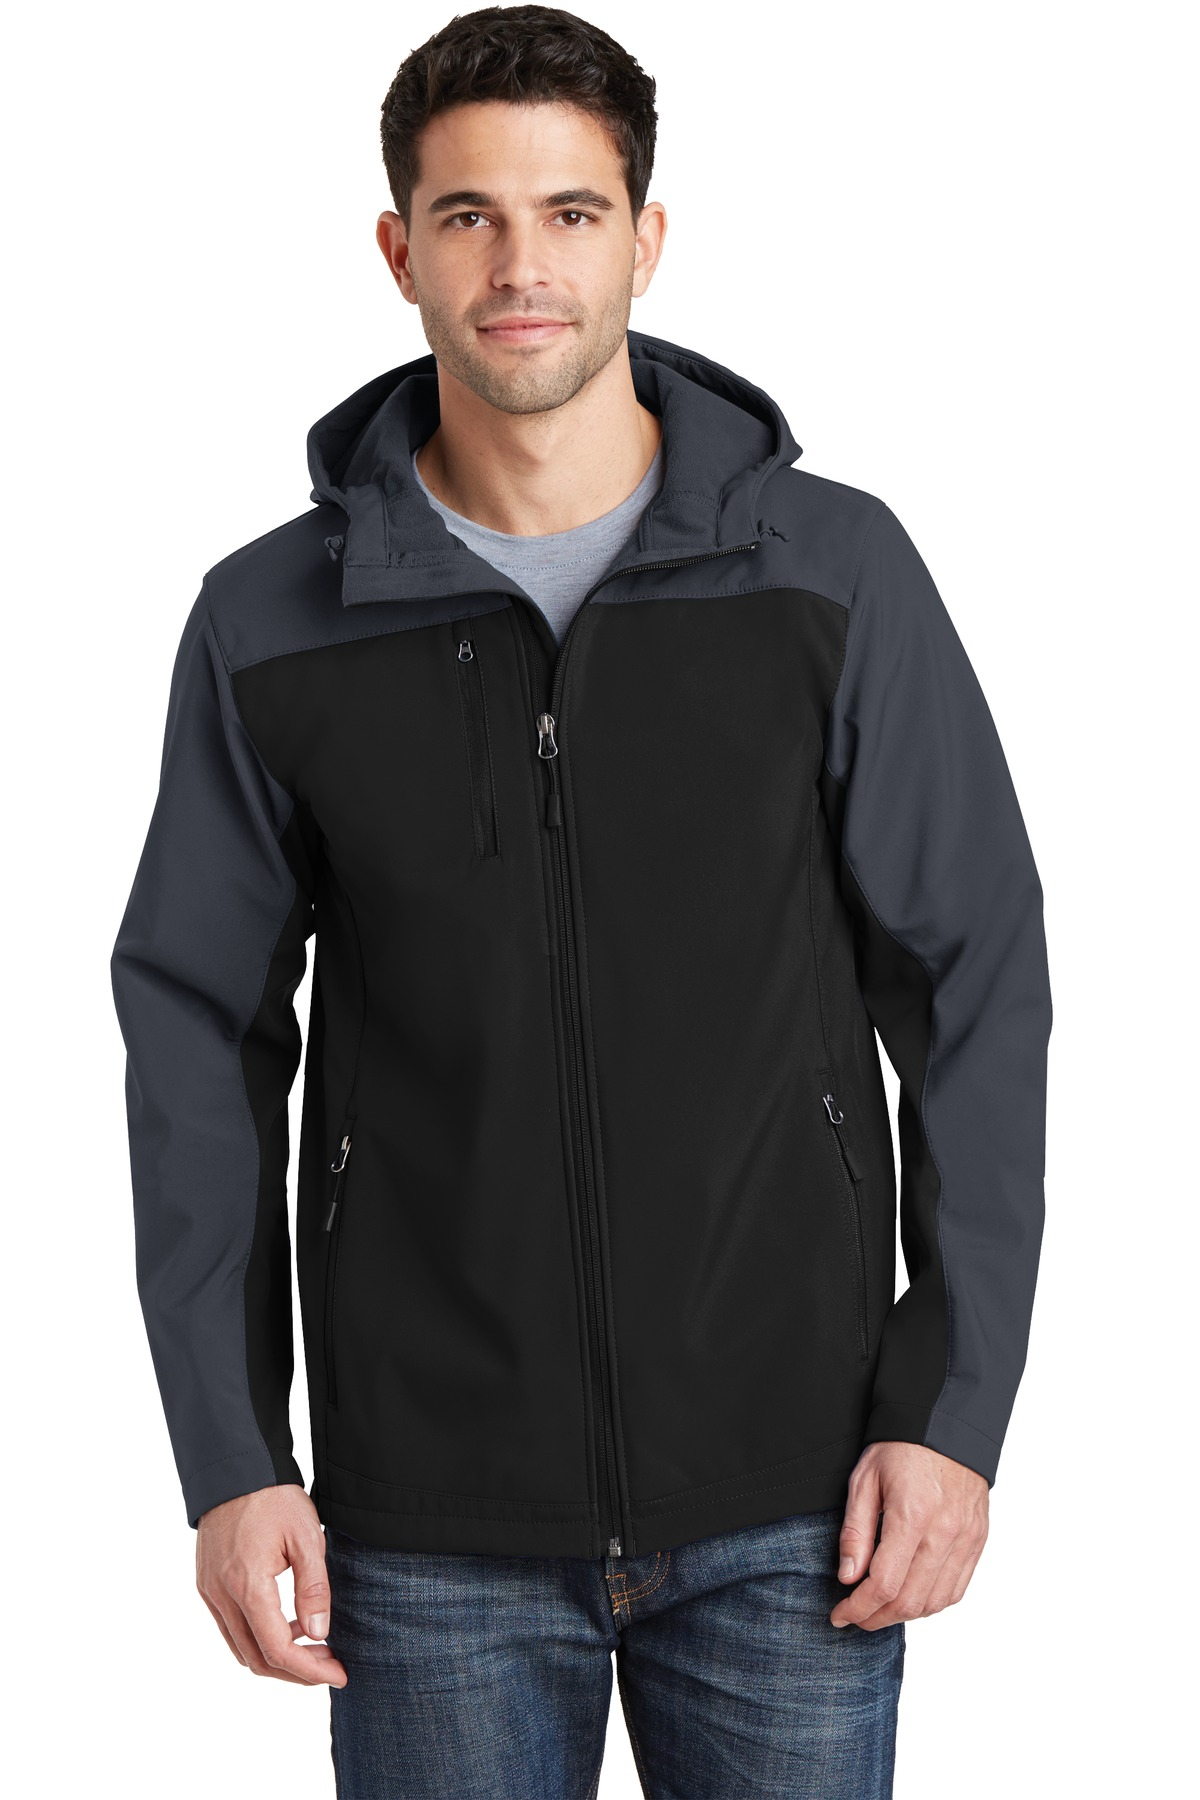 Port Authority  J335 - Hooded Core Soft Shell Jacket